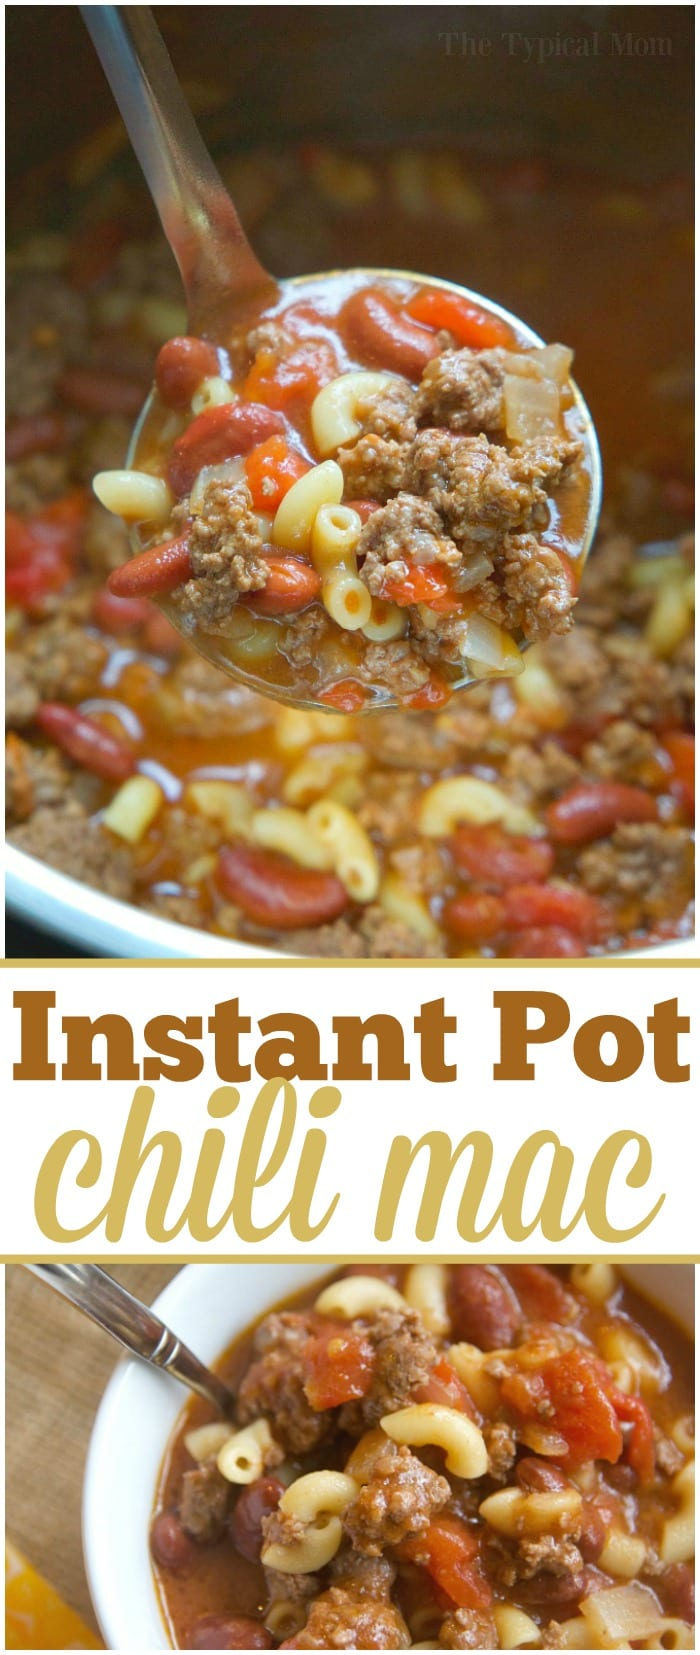 The best 5 minute Instant Pot chili mac recipe that you and your kids will love! A classic old fashioned goulash dinner packed with flavor. #instantpot #chilimac #chili #macaroni #goulash #pressurecooker #groundbeef #easy #dinner